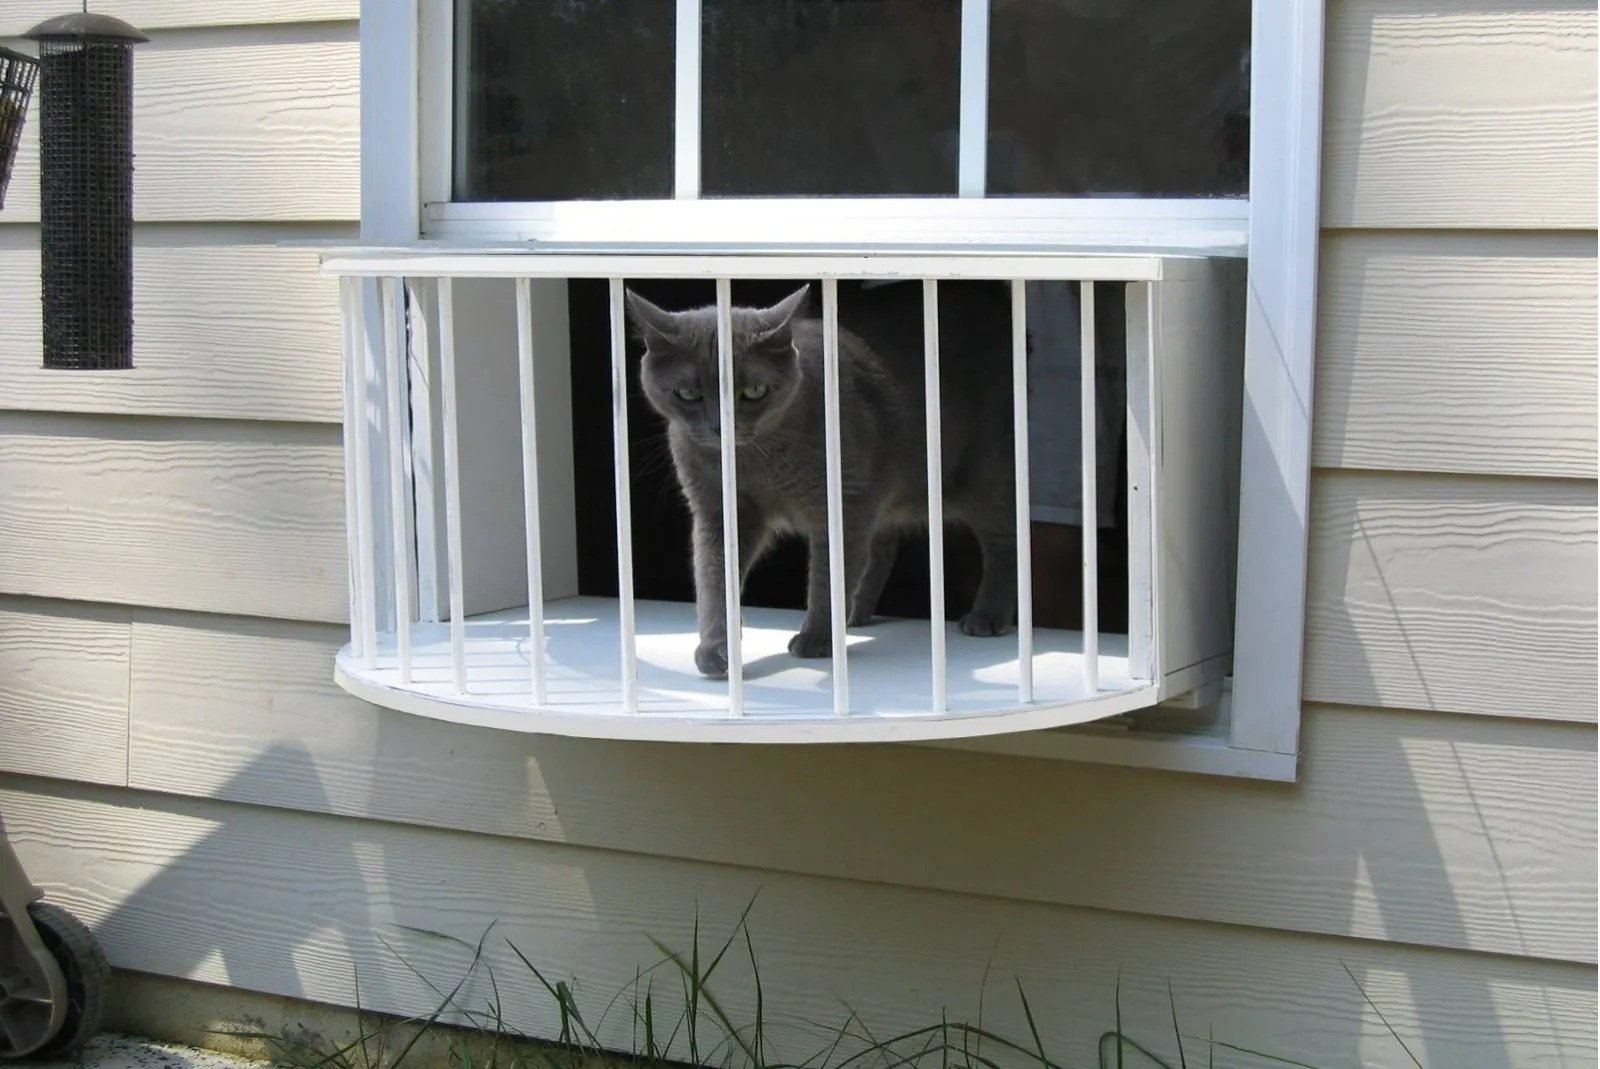 The Cat Solarium is the newest cat product must-have. Every cat loves boxes, but the Cat Solarium is the ultimate box: A cat house box or cat window patio. These Cat Solariums are made in the United States/ Alabama.They are made of the highest quality components available and will last for years. The structure itself is made of ¾ inch cabinet grade plywood and painted with marine grade paint. They are very durable, sun and water resistant.  This cat house is exactly what the name means. It is a room which fits in most common windows of houses, apartments and businesses. This cat house has a complete 180-degree view. The overhead roof made of scratch-resistant plexiglass which provides a great overhead view of the sky as well as any of nature's creations.There are over 20 parts that connect to rows of grooves that if 100th of an inch off, the whole box will not go together. Precision is key. All those parts get multiple coats of paint. The paint cost us $75 for a gallon and is specially made for us by the Amish. Check out our site for the different options available.  This standard model comes with the structure consisting of the top and bottom, sides, a 1/4″ Plexiglas roof, 14 posts and enclosure material to seal off the sides of the box. The dimensions are 26″ wide and 14 1/2″ tall. It will fit in 95% of all double hung windows. Be sure to check out all the options available. We recommend the mesh screen for summer time and the plexiglass weather insert for the winter.The Cat Solarium: the unique way to let your indoor cat outside safely.  Cat solarium, cat window perch, cat windowsill perch, cat perch, modern cat perch, cat window bed, cat window seat, cat veranda, cat window ledge, cat windowsill ledge, feline window box, feline solarium, cat window box outside, feline window box enclosure, cat window box enclosure, feline window perch, feline perch, modern feline perch, feline window seat, cat window condo, cat enclosures, outdoor cat enclosures, cat window pen,